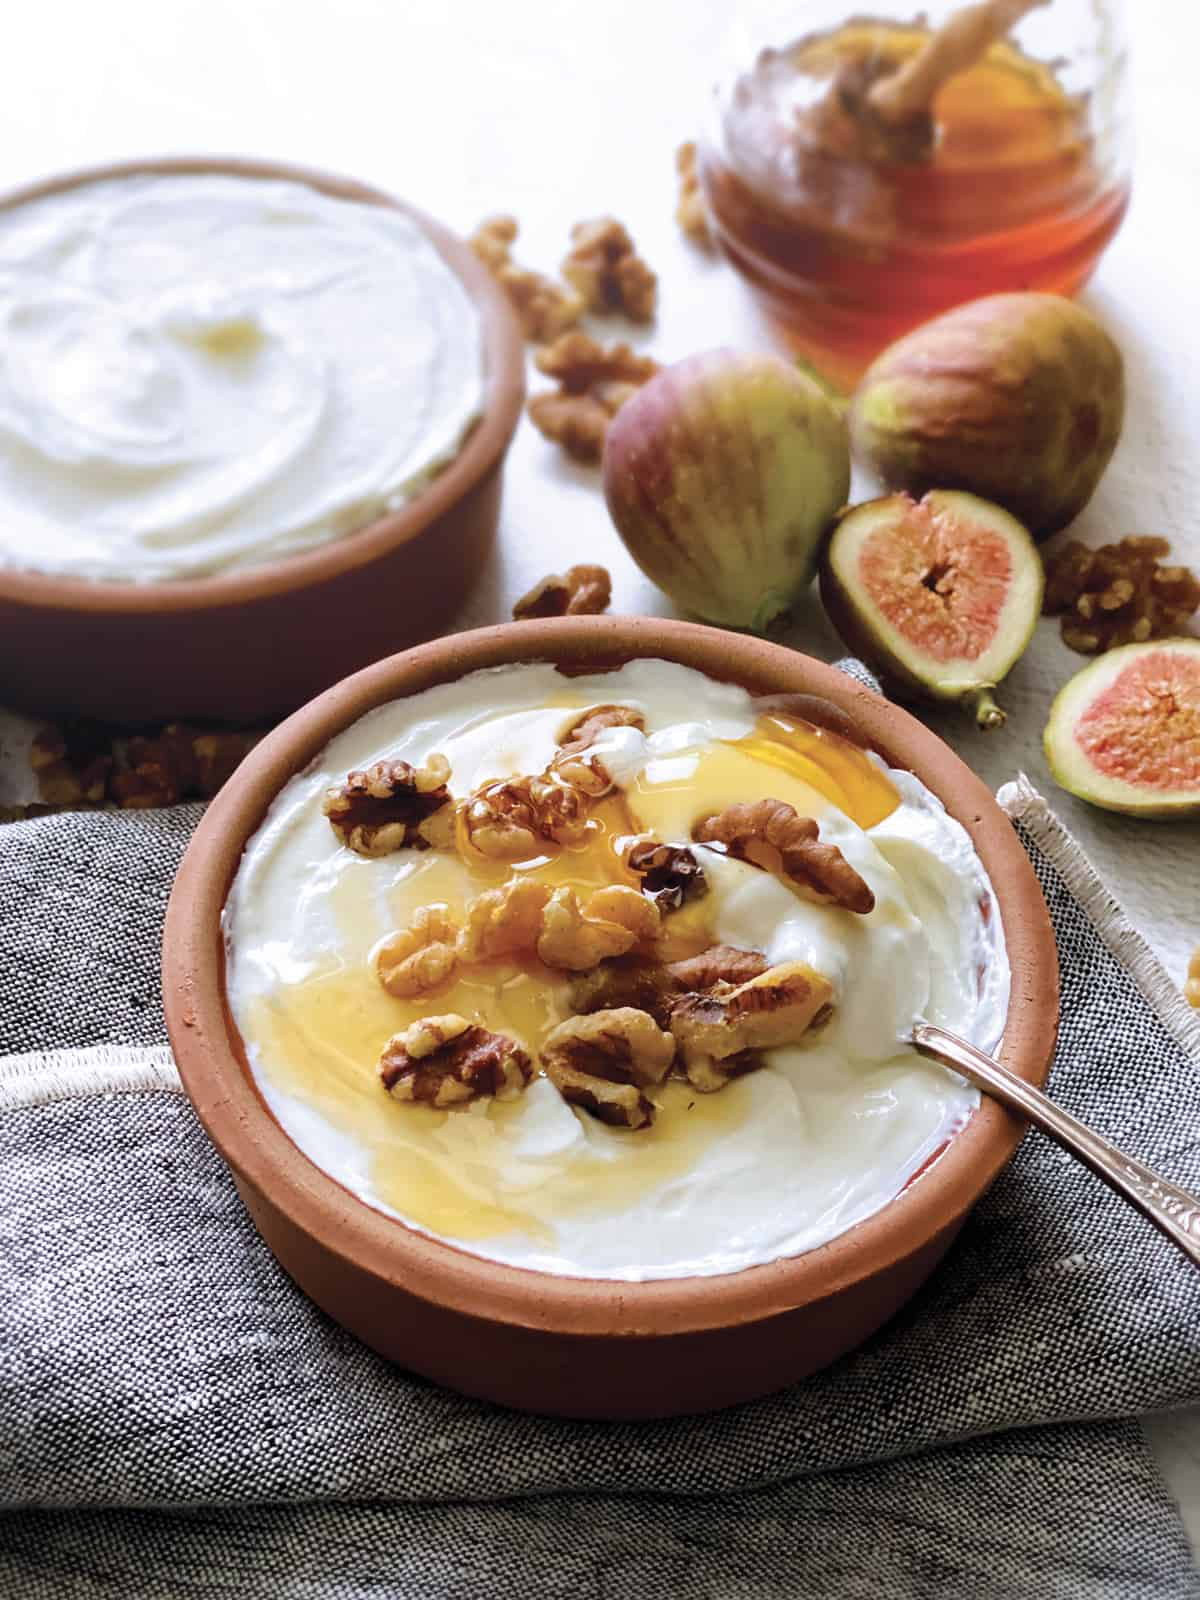 A bowl with yogurt, honey and walnuts, a spoon on a cloth napkin, fig halves, another bowl with yogurt and a jar with honey.